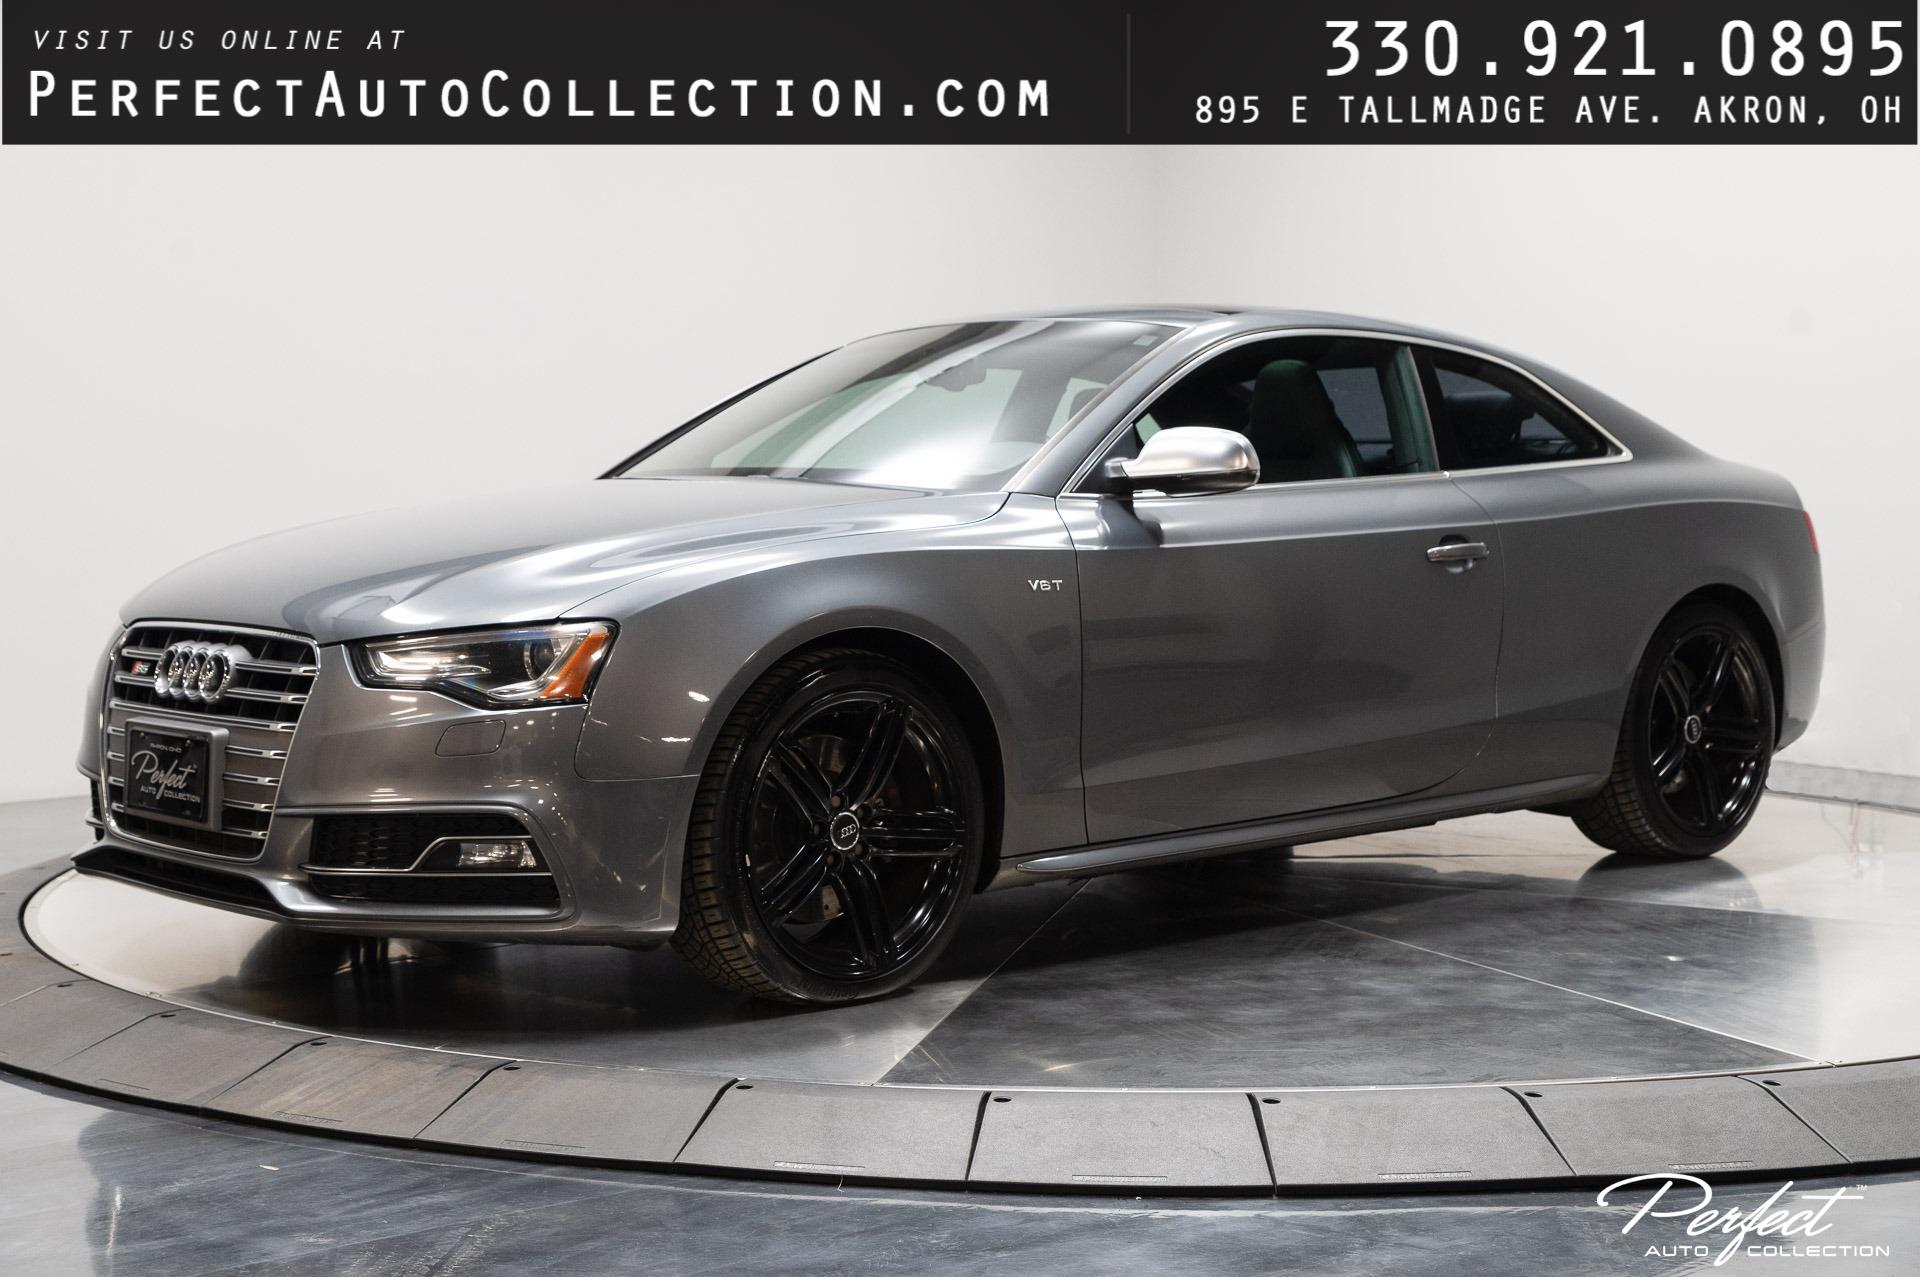 Used 2013 Audi S5 3.0T quattro Premium Plus for sale $18,995 at Perfect Auto Collection in Akron OH 44310 1